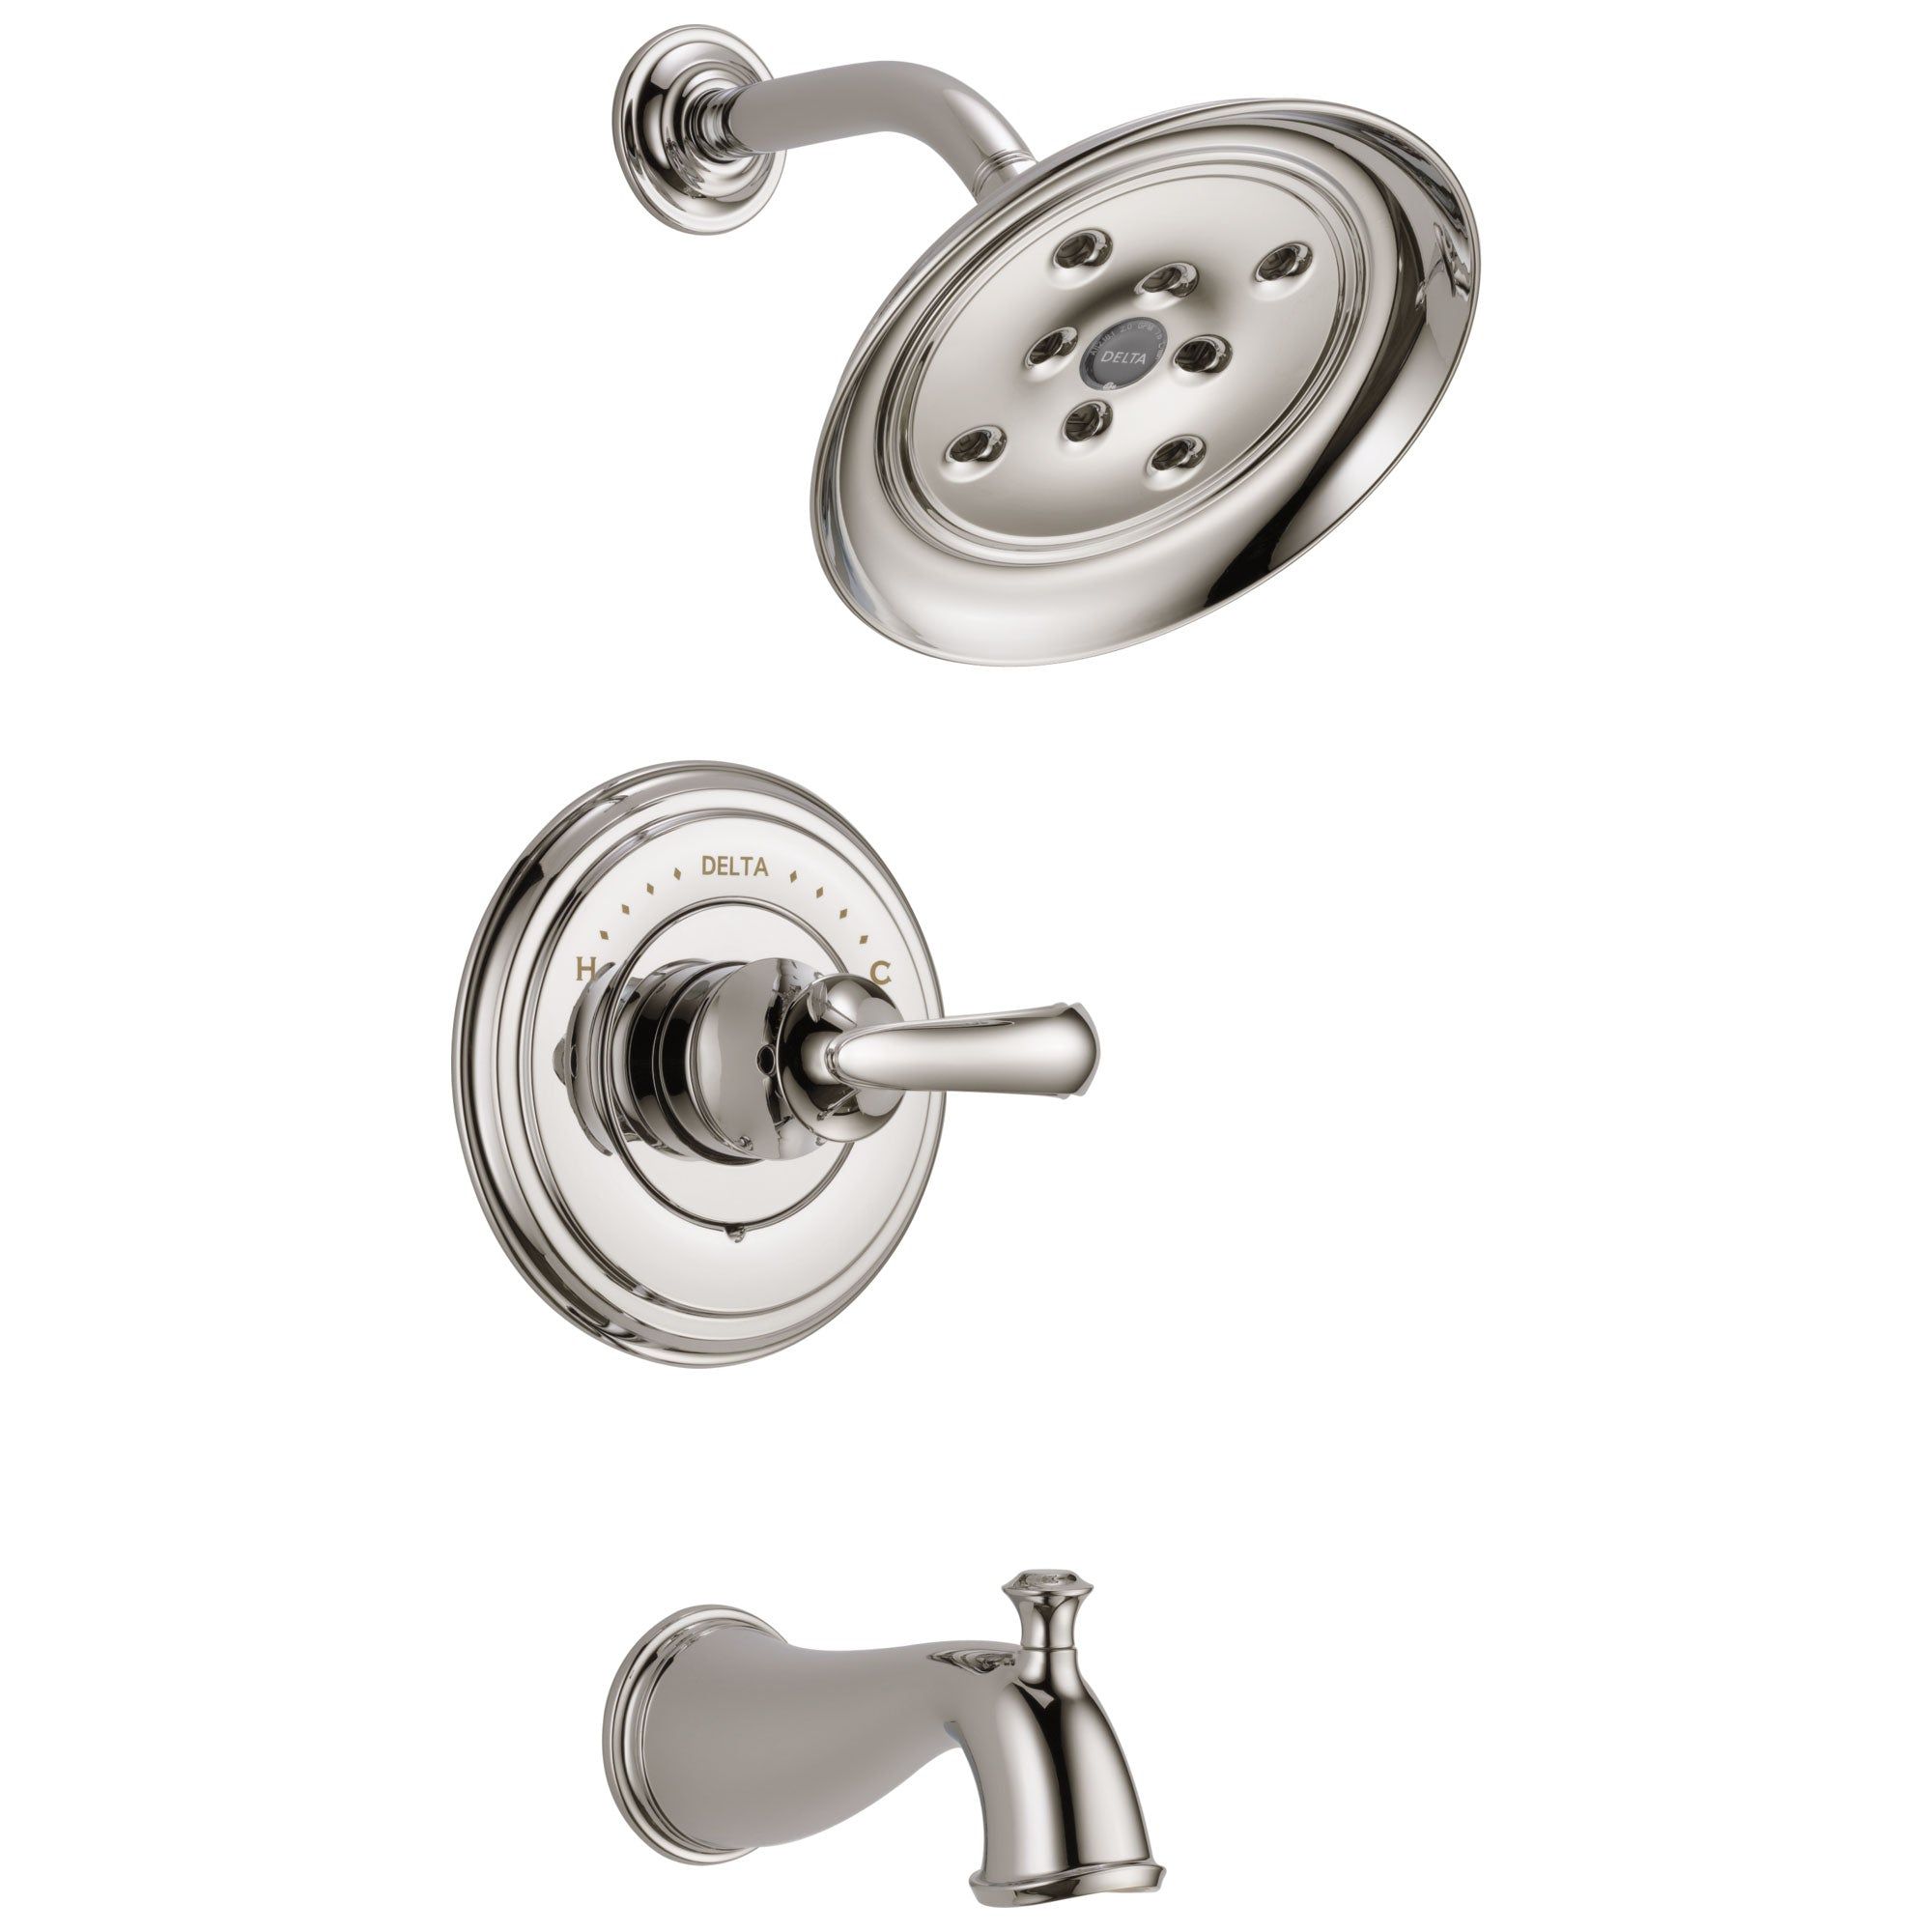 Delta Cassidy Collection Polished Nickel Monitor 14 Tub and Shower Faucet Combination INCLUDES Single French Curve Handle and Rough-Valve with Stops D1481V